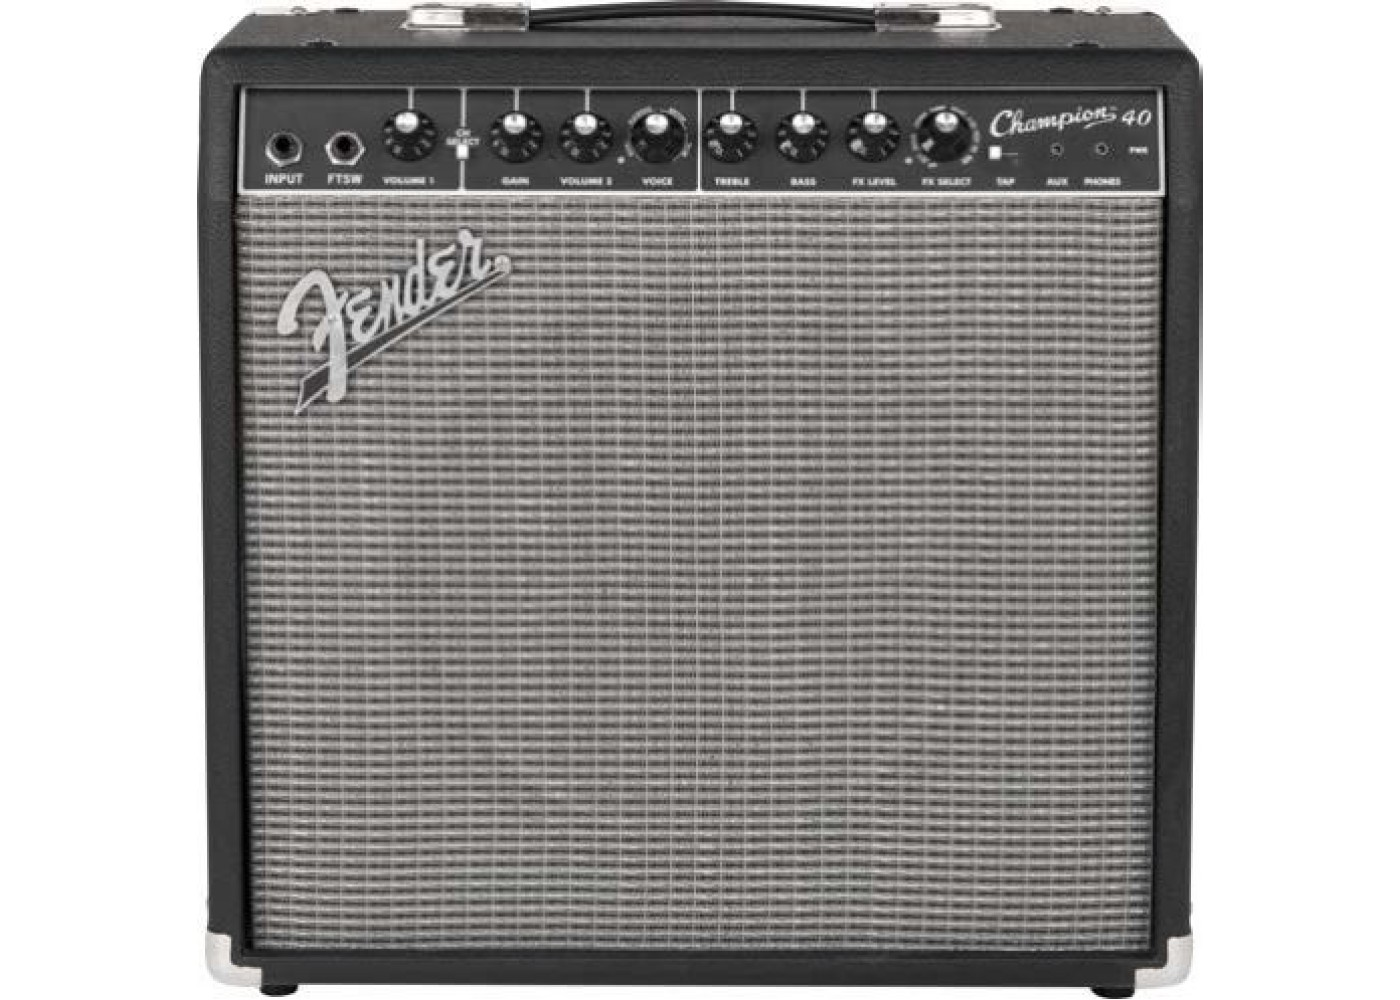 fender champion 40 40w guitar combo amp with effects. Black Bedroom Furniture Sets. Home Design Ideas